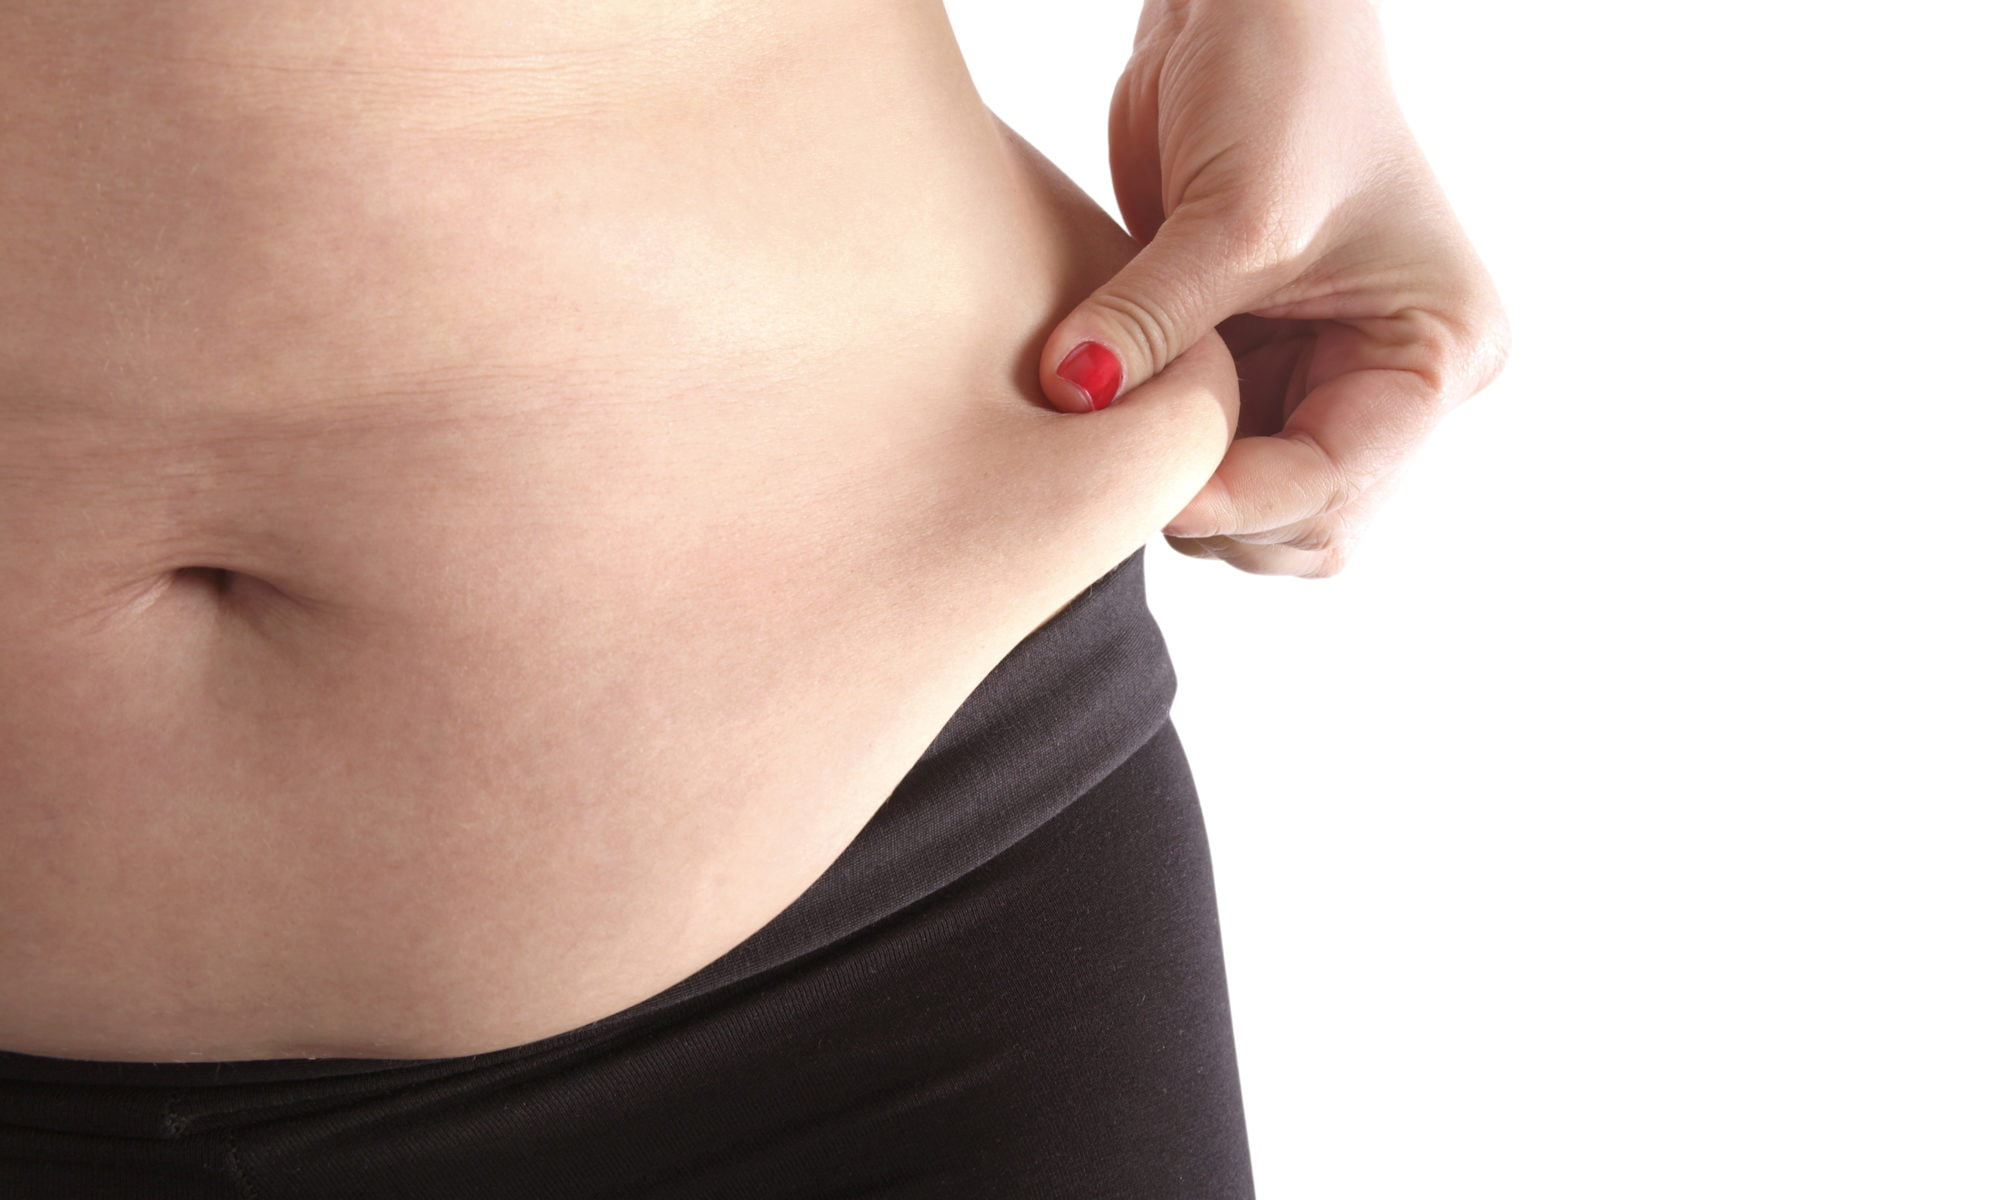 Tummy Tuck (Abdominoplasty) in Jupiter, FL